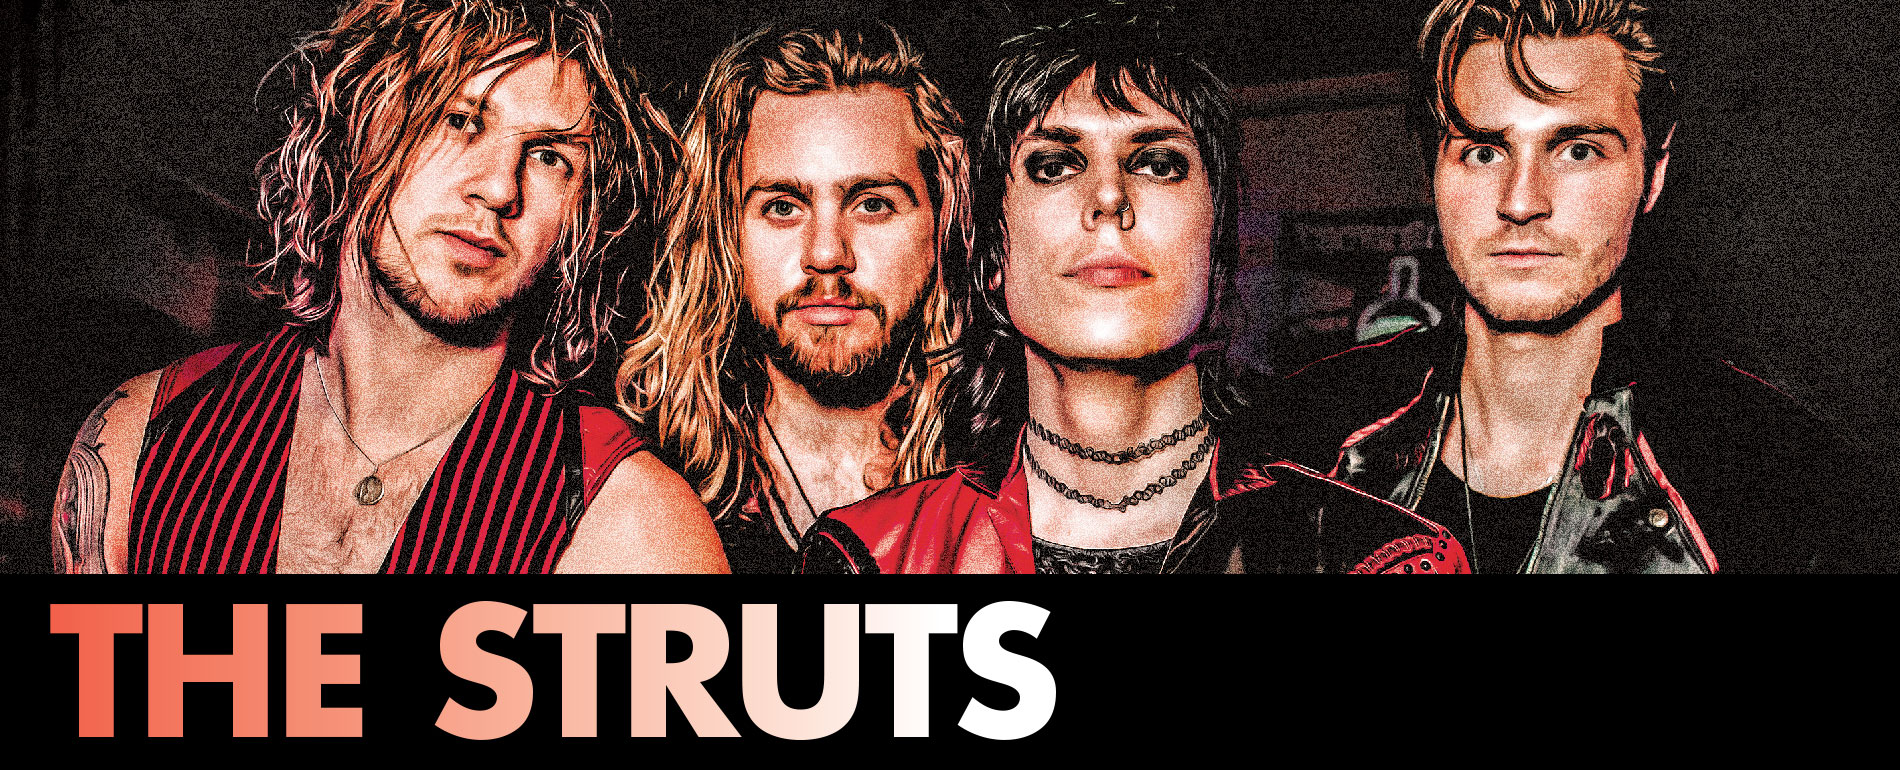 Summer Stage Concerts | The Struts Young & Dangerous tour | Glorious Sons